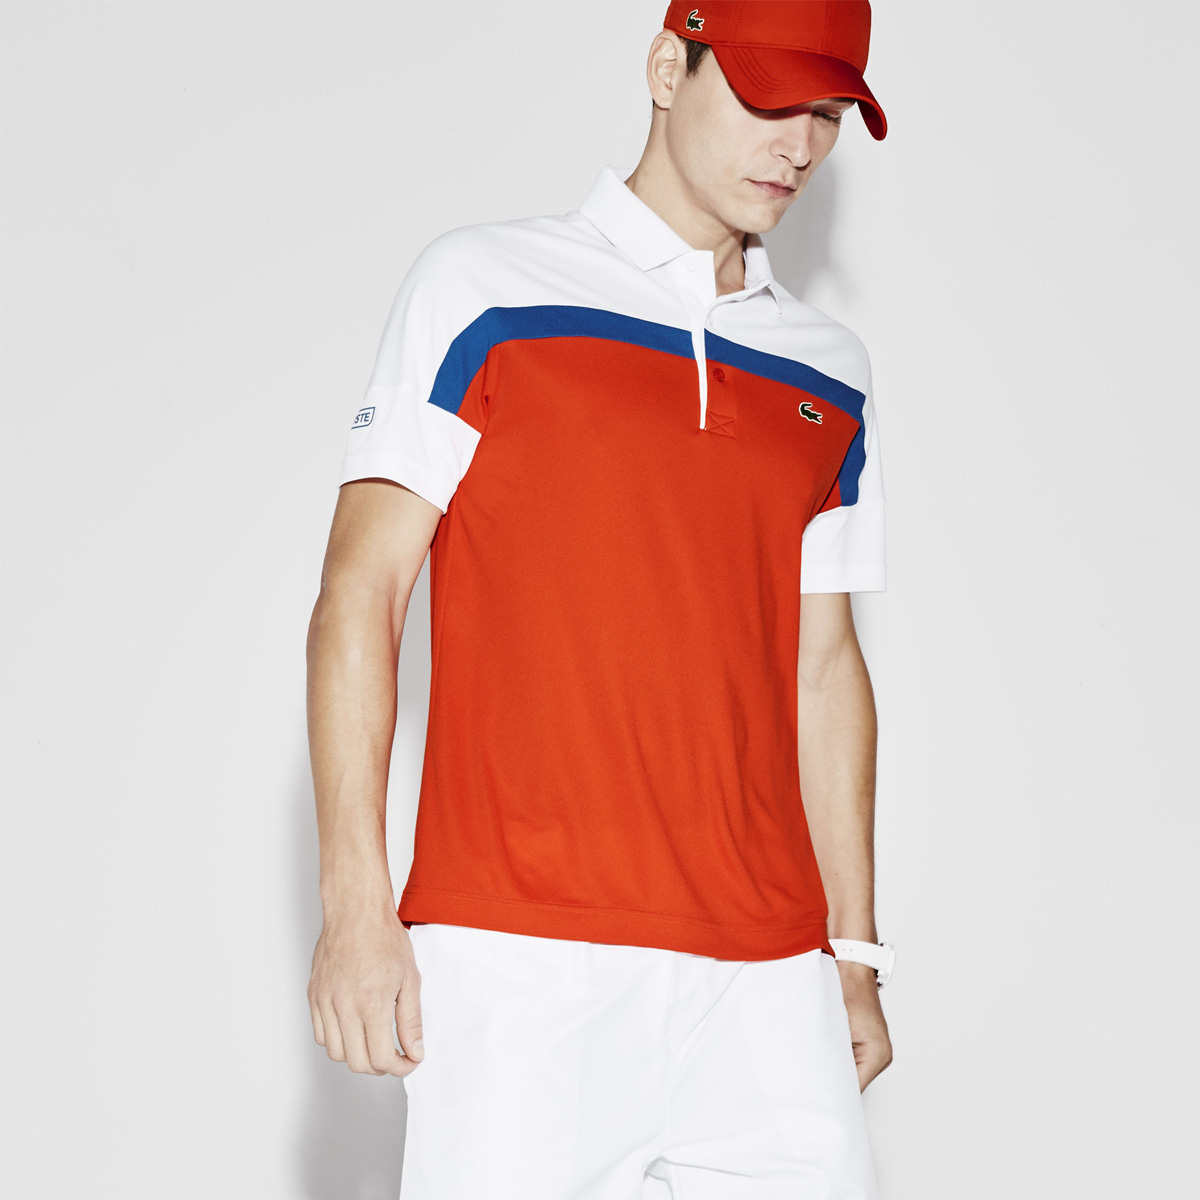 a9e0fbbff6 Polos 902lacoste canada bags Lacoste Sport Ultra Dry Color Block Tennis Polo  Ember Victorian-White